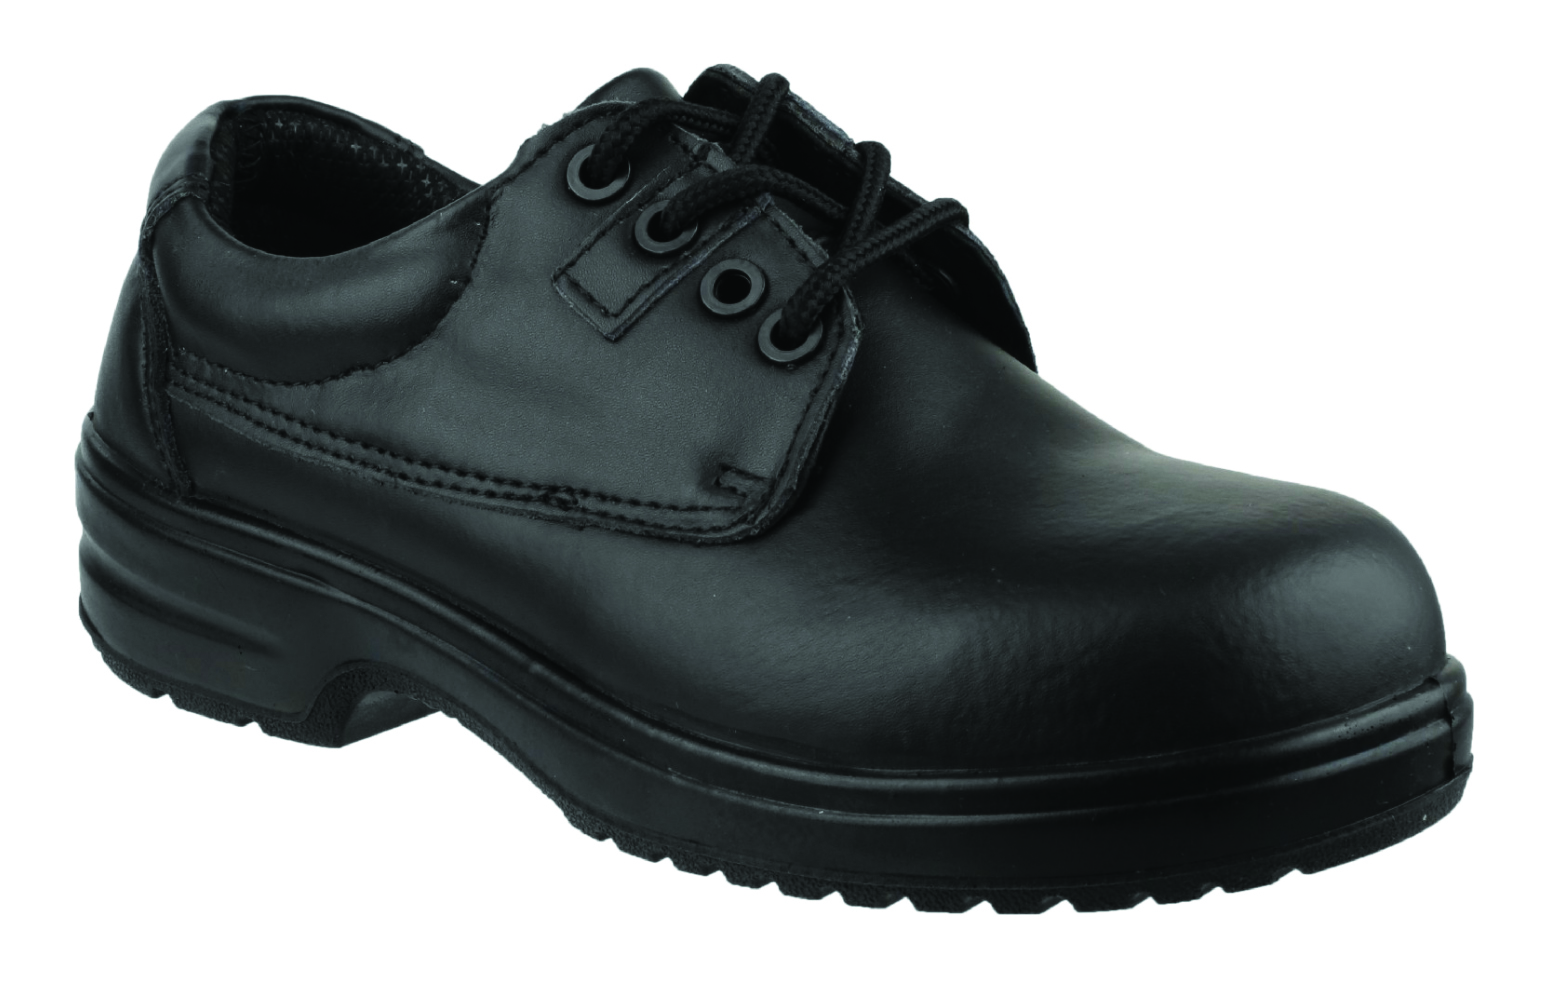 bodyguard-Shoes-Ambelrs-Ladies-Safety-Shoe